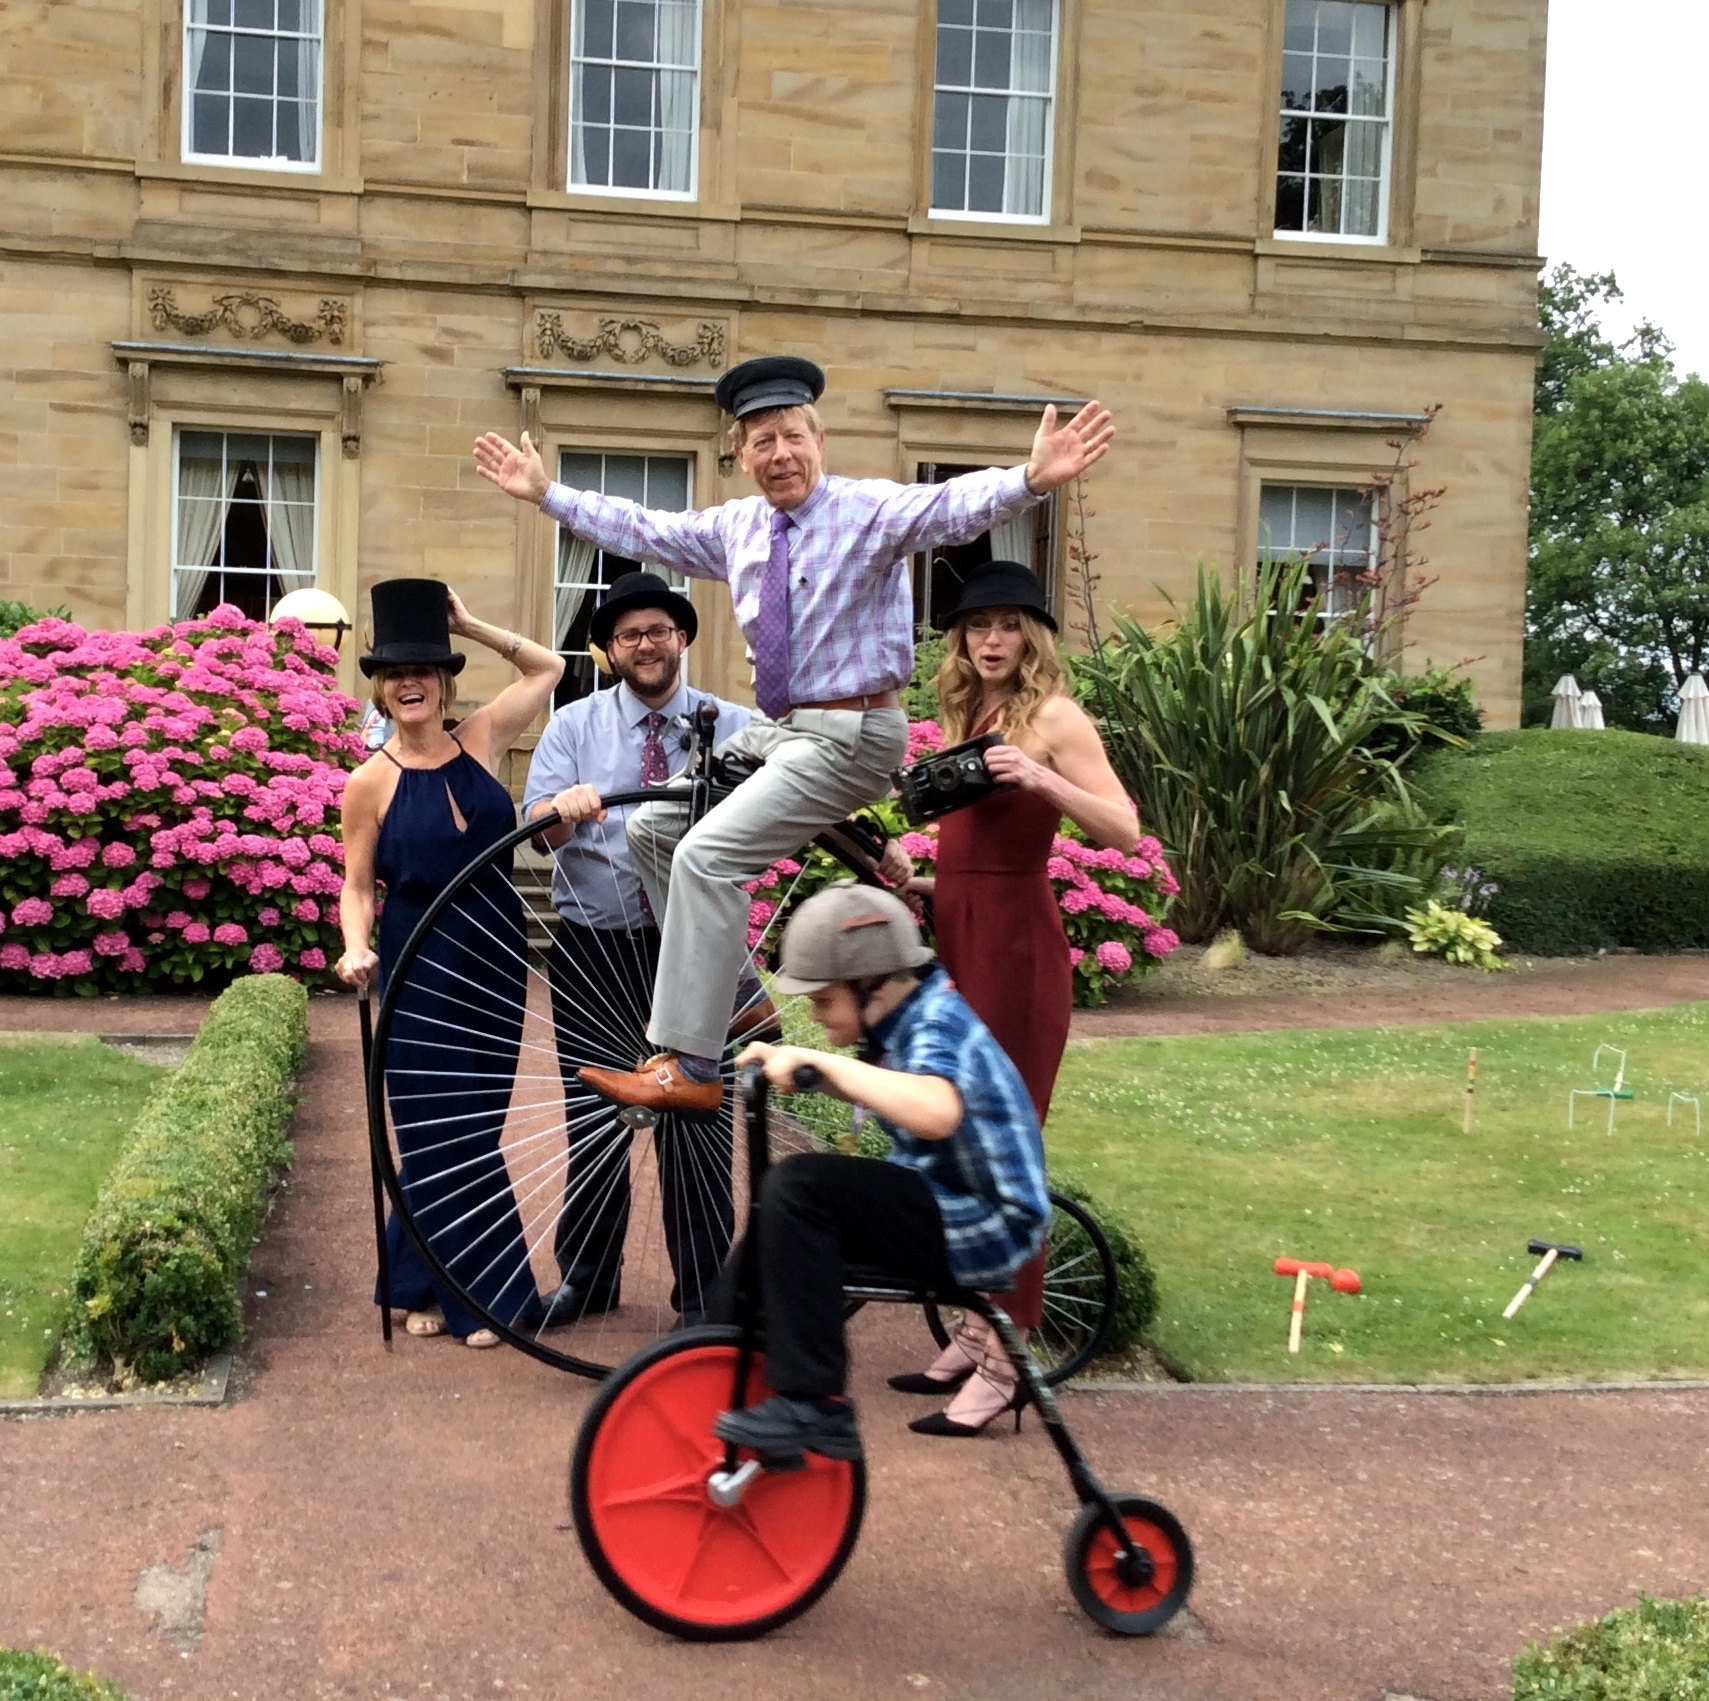 VINTAGE FUN! - Designed with Historical sites in mind, our specialist range of Penny Farthing bikes are suitable for all ages to enjoy. And can be ridden on all types of terrain without damage to grounds!Dressing Up and props are all part of this spectacular wedding day attraction, giving much fun and folly. Safety helmets are all in a vintage style making the whole experience safe, exciting and brilliantly unique!